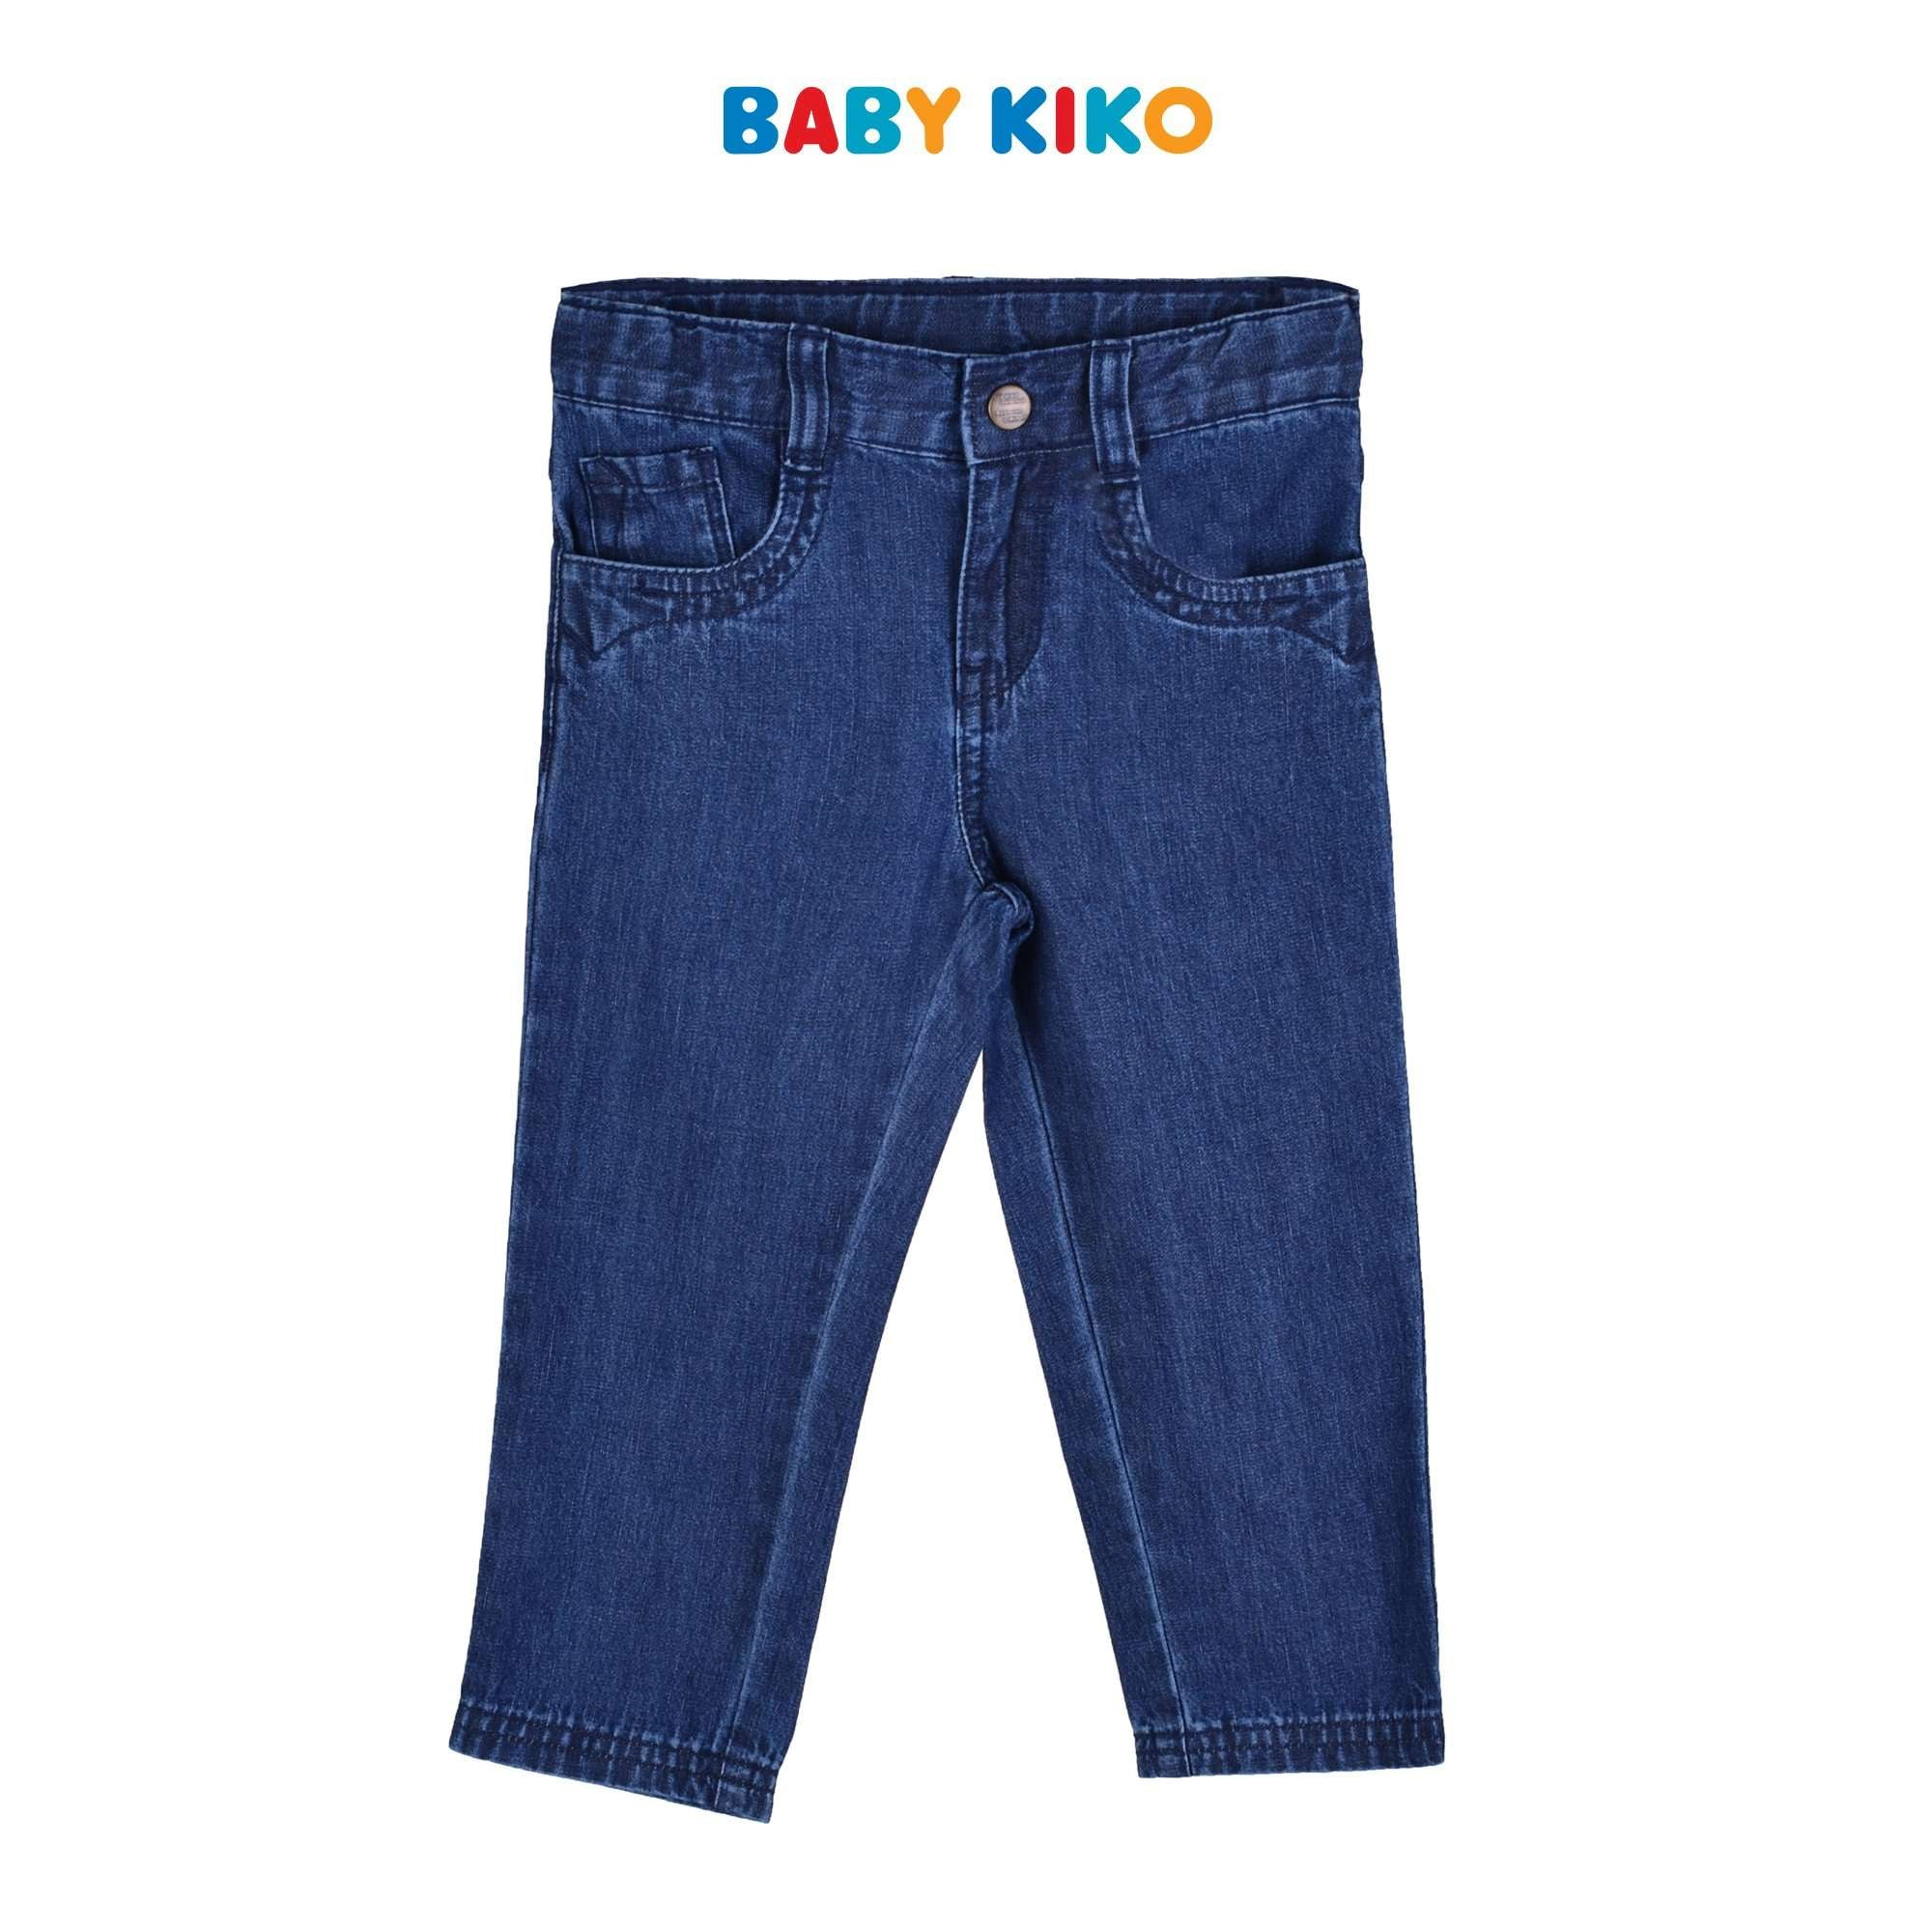 Baby KIKO Toddler Boy Jeans 335135-211 : Buy Baby KIKO online at CMG.MY